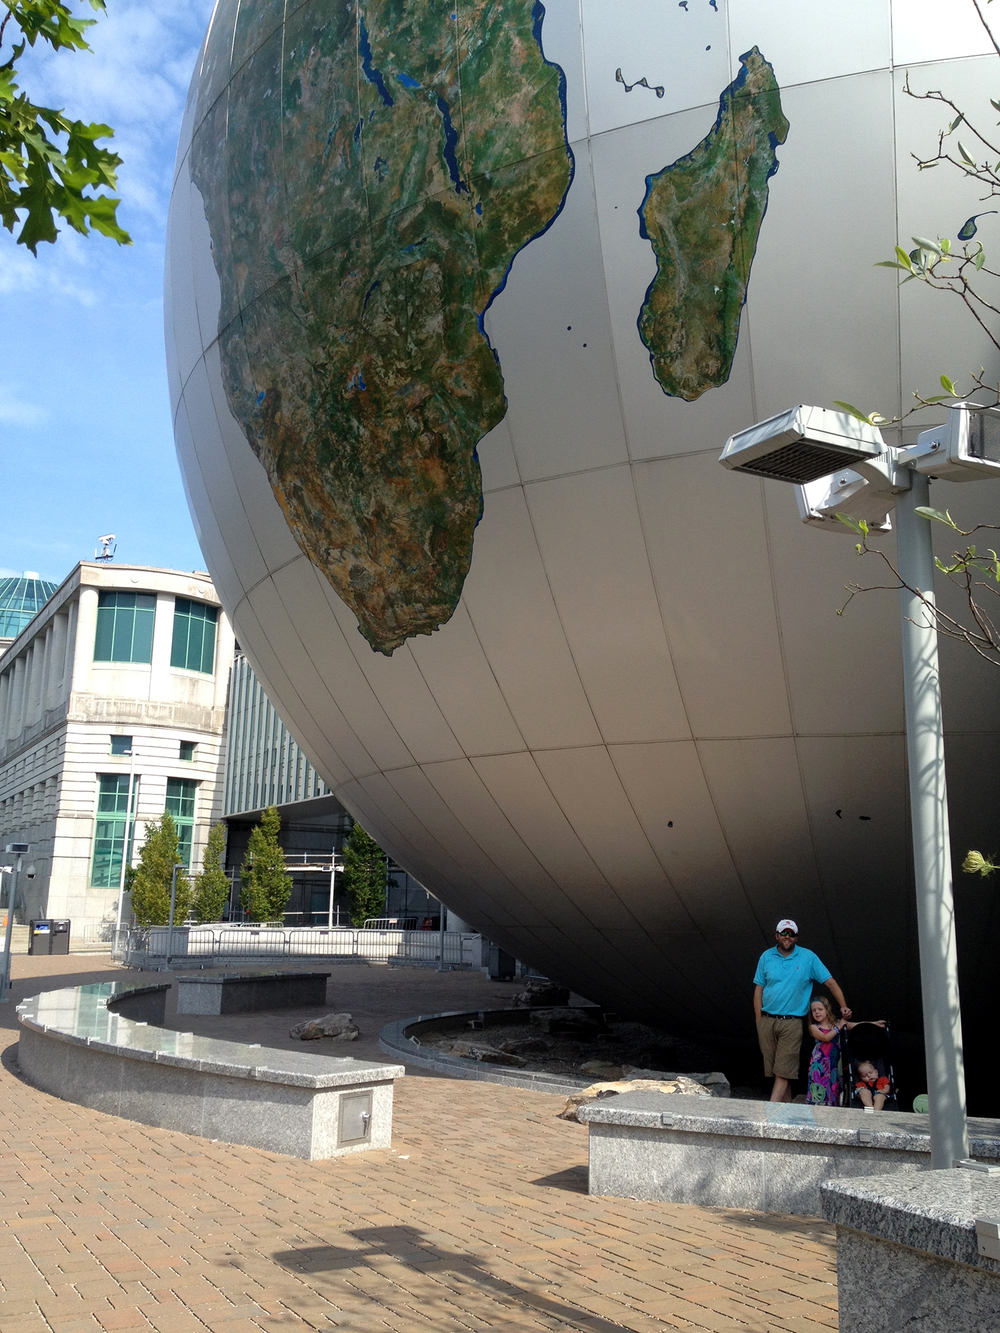 While in Raleigh, we visited the North Carolina Museum of Natural Sciences.